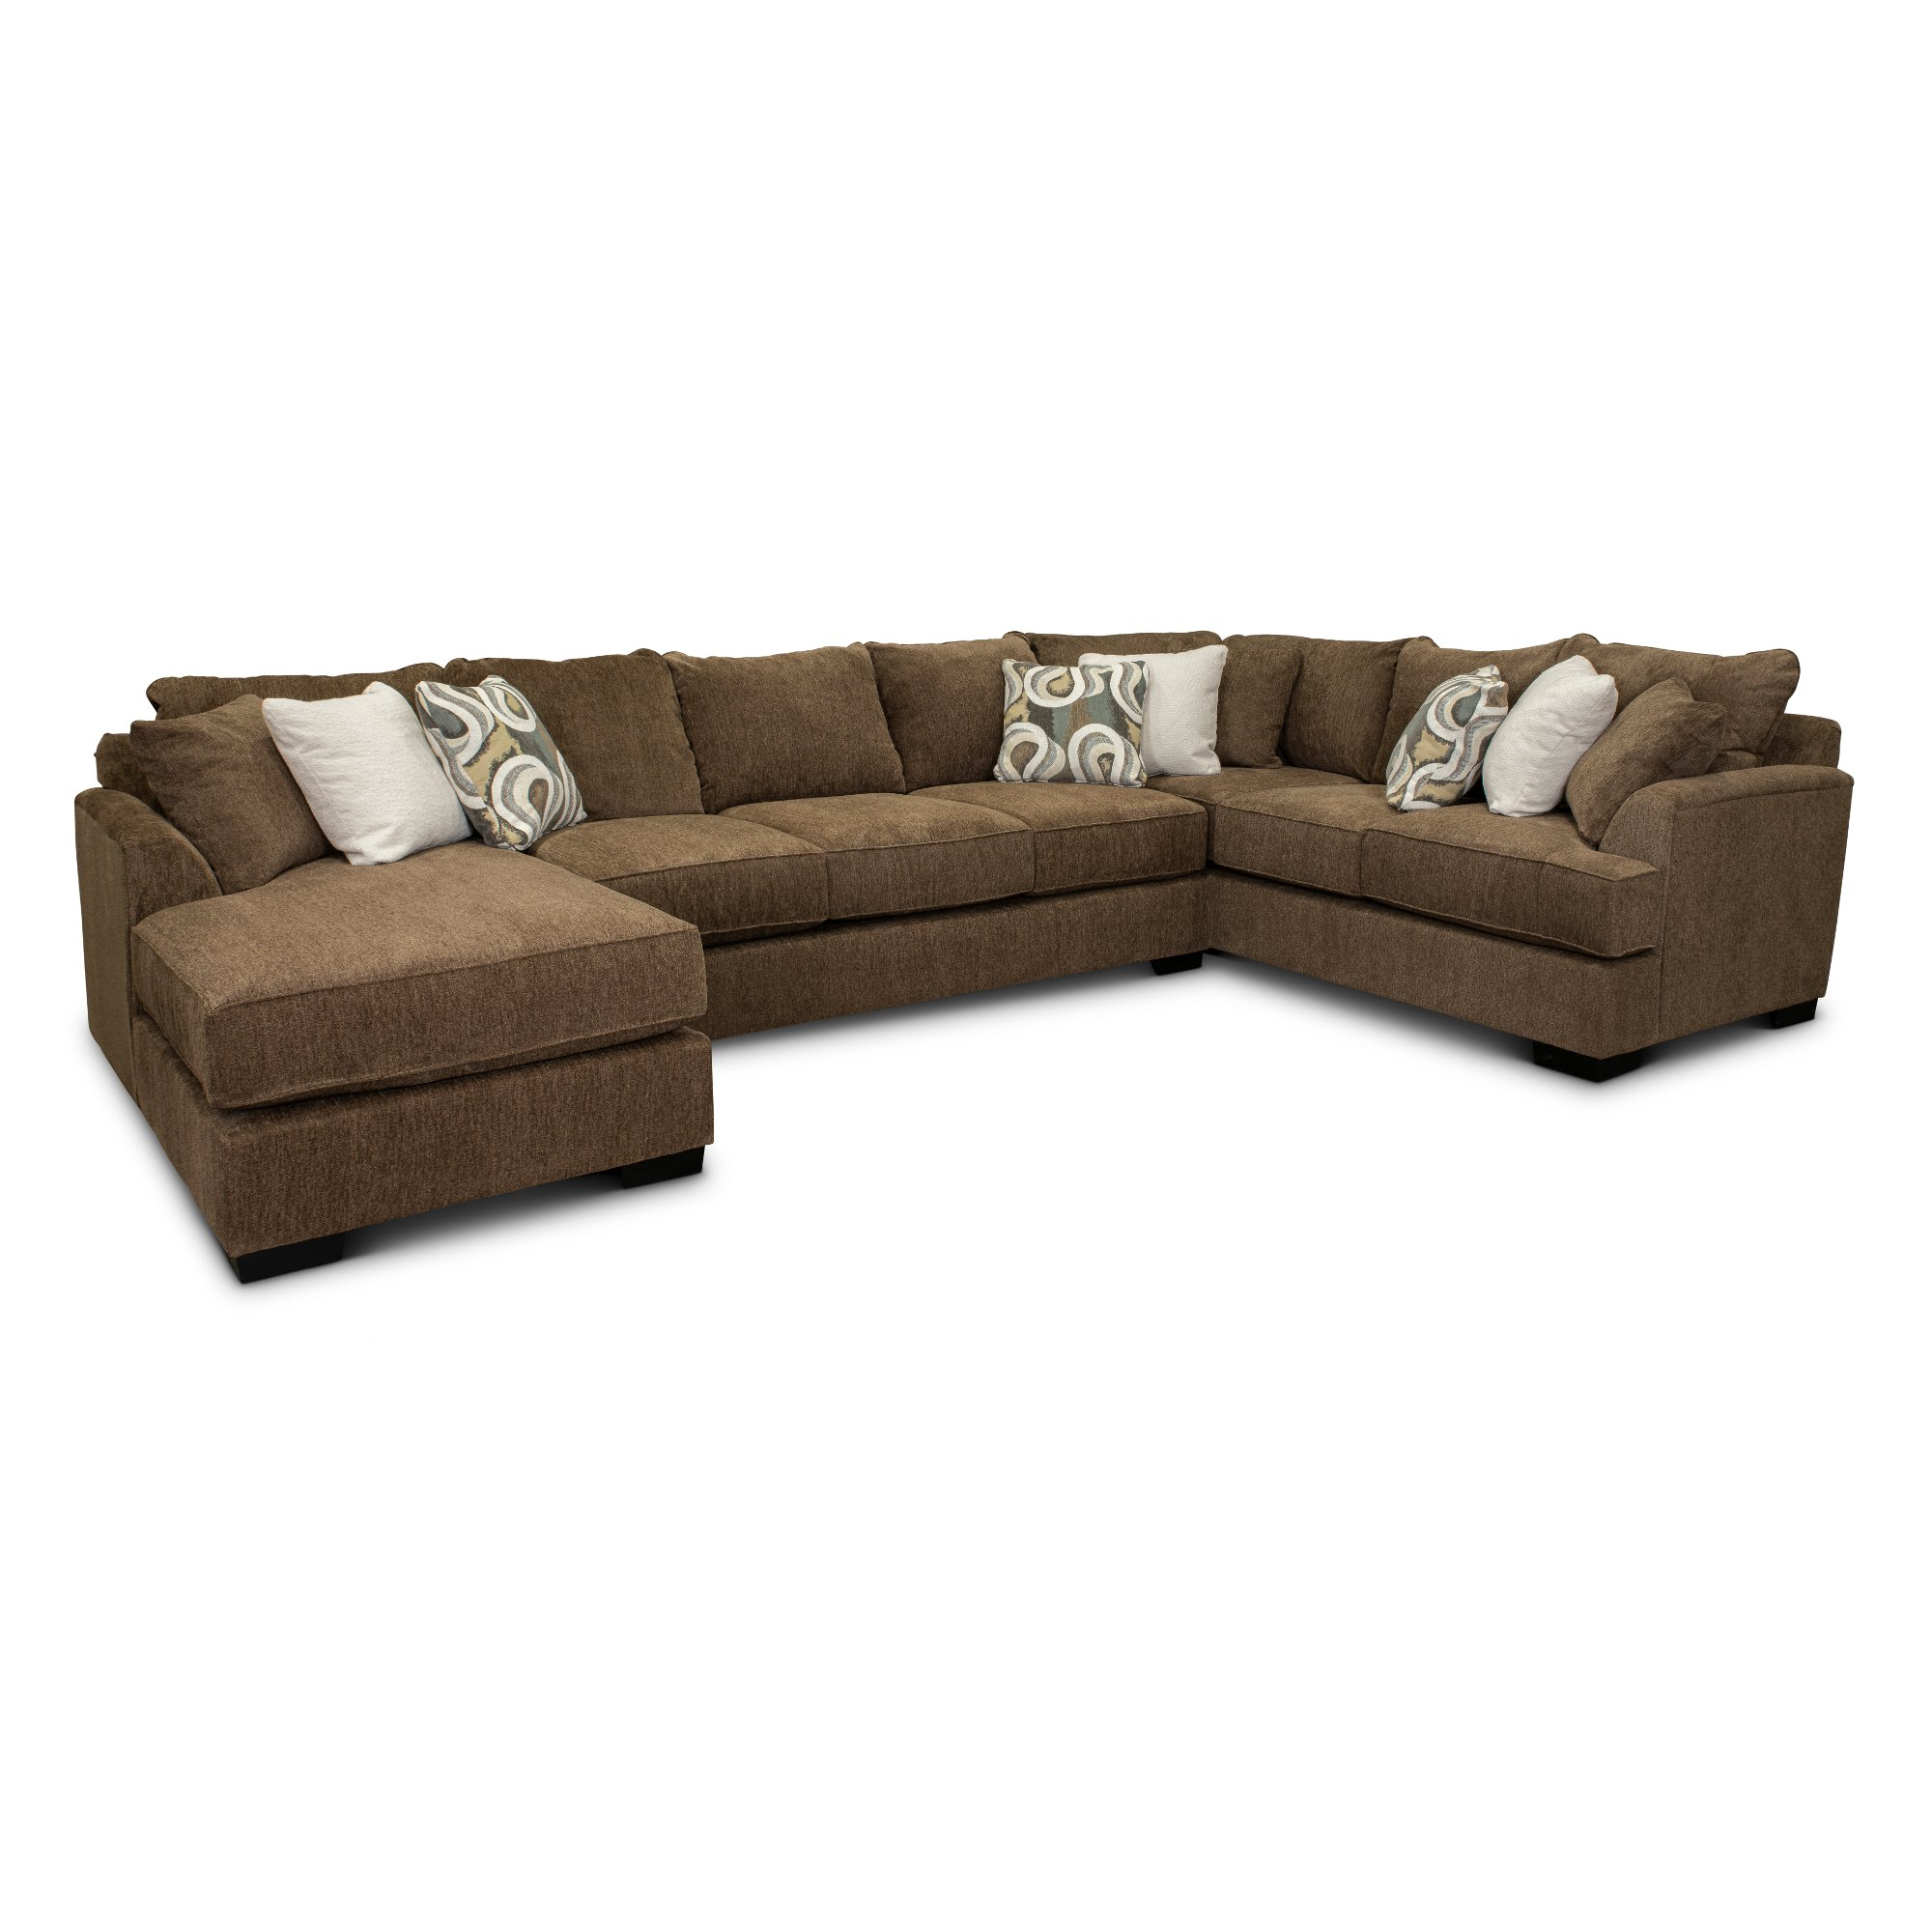 Brown 3 Piece Sectional Sofa With Laf Chaise Tranquility Rc Willey Furniture Store